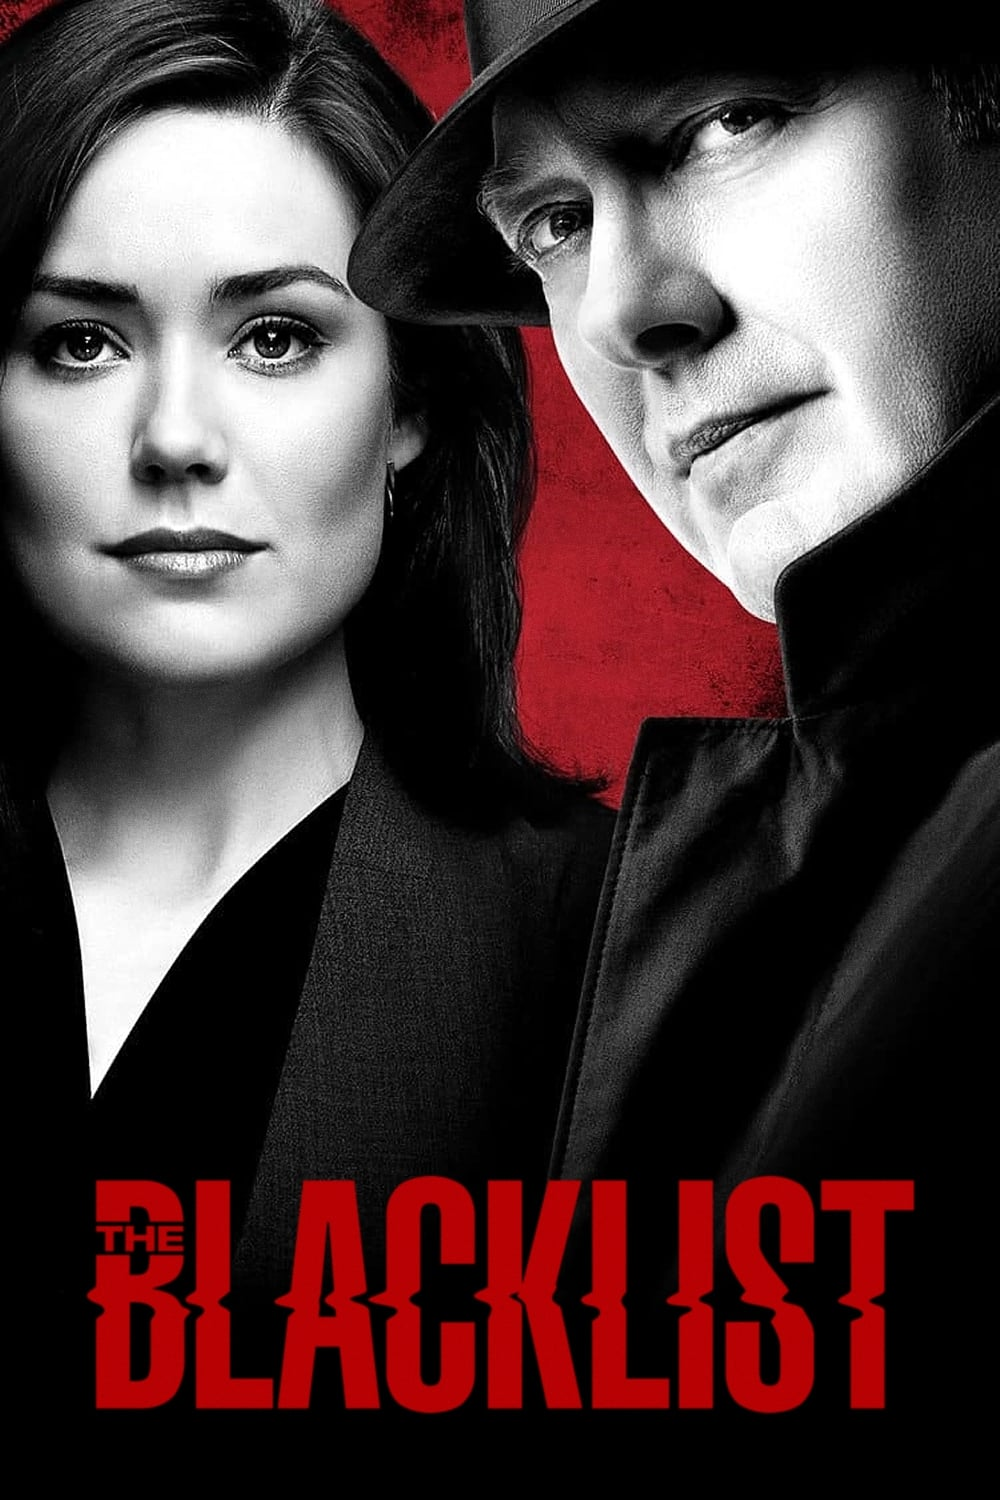 image for The Blacklist